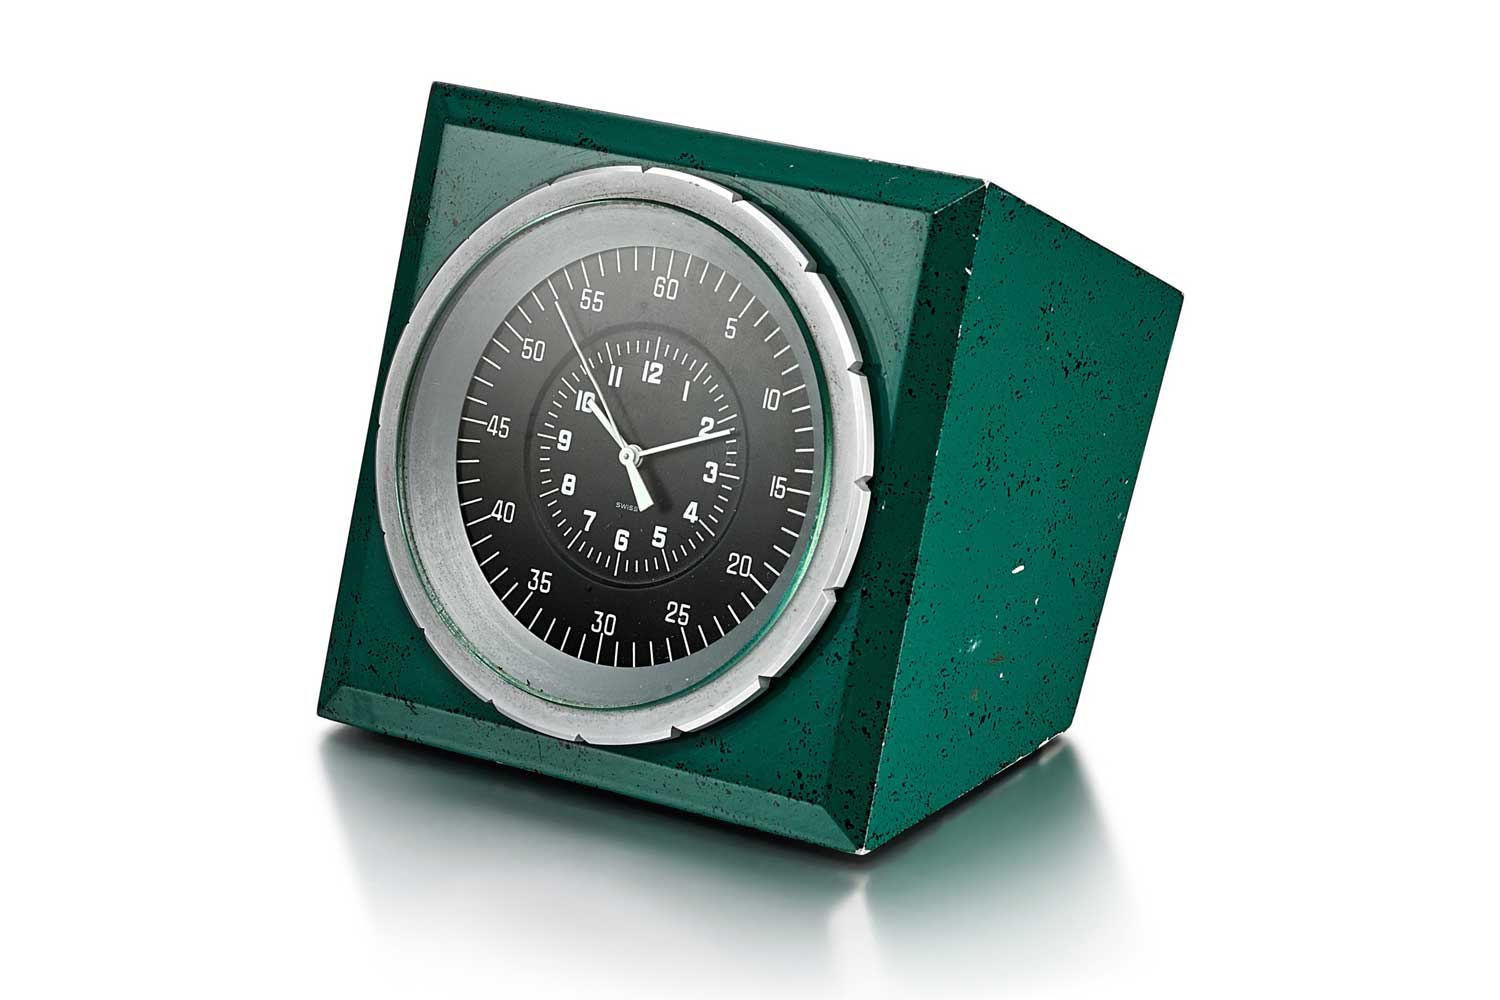 Lot 8089: Patek Philippe for Rolex - A Green Painted Metal Electric Desk Clock, Circa 1970